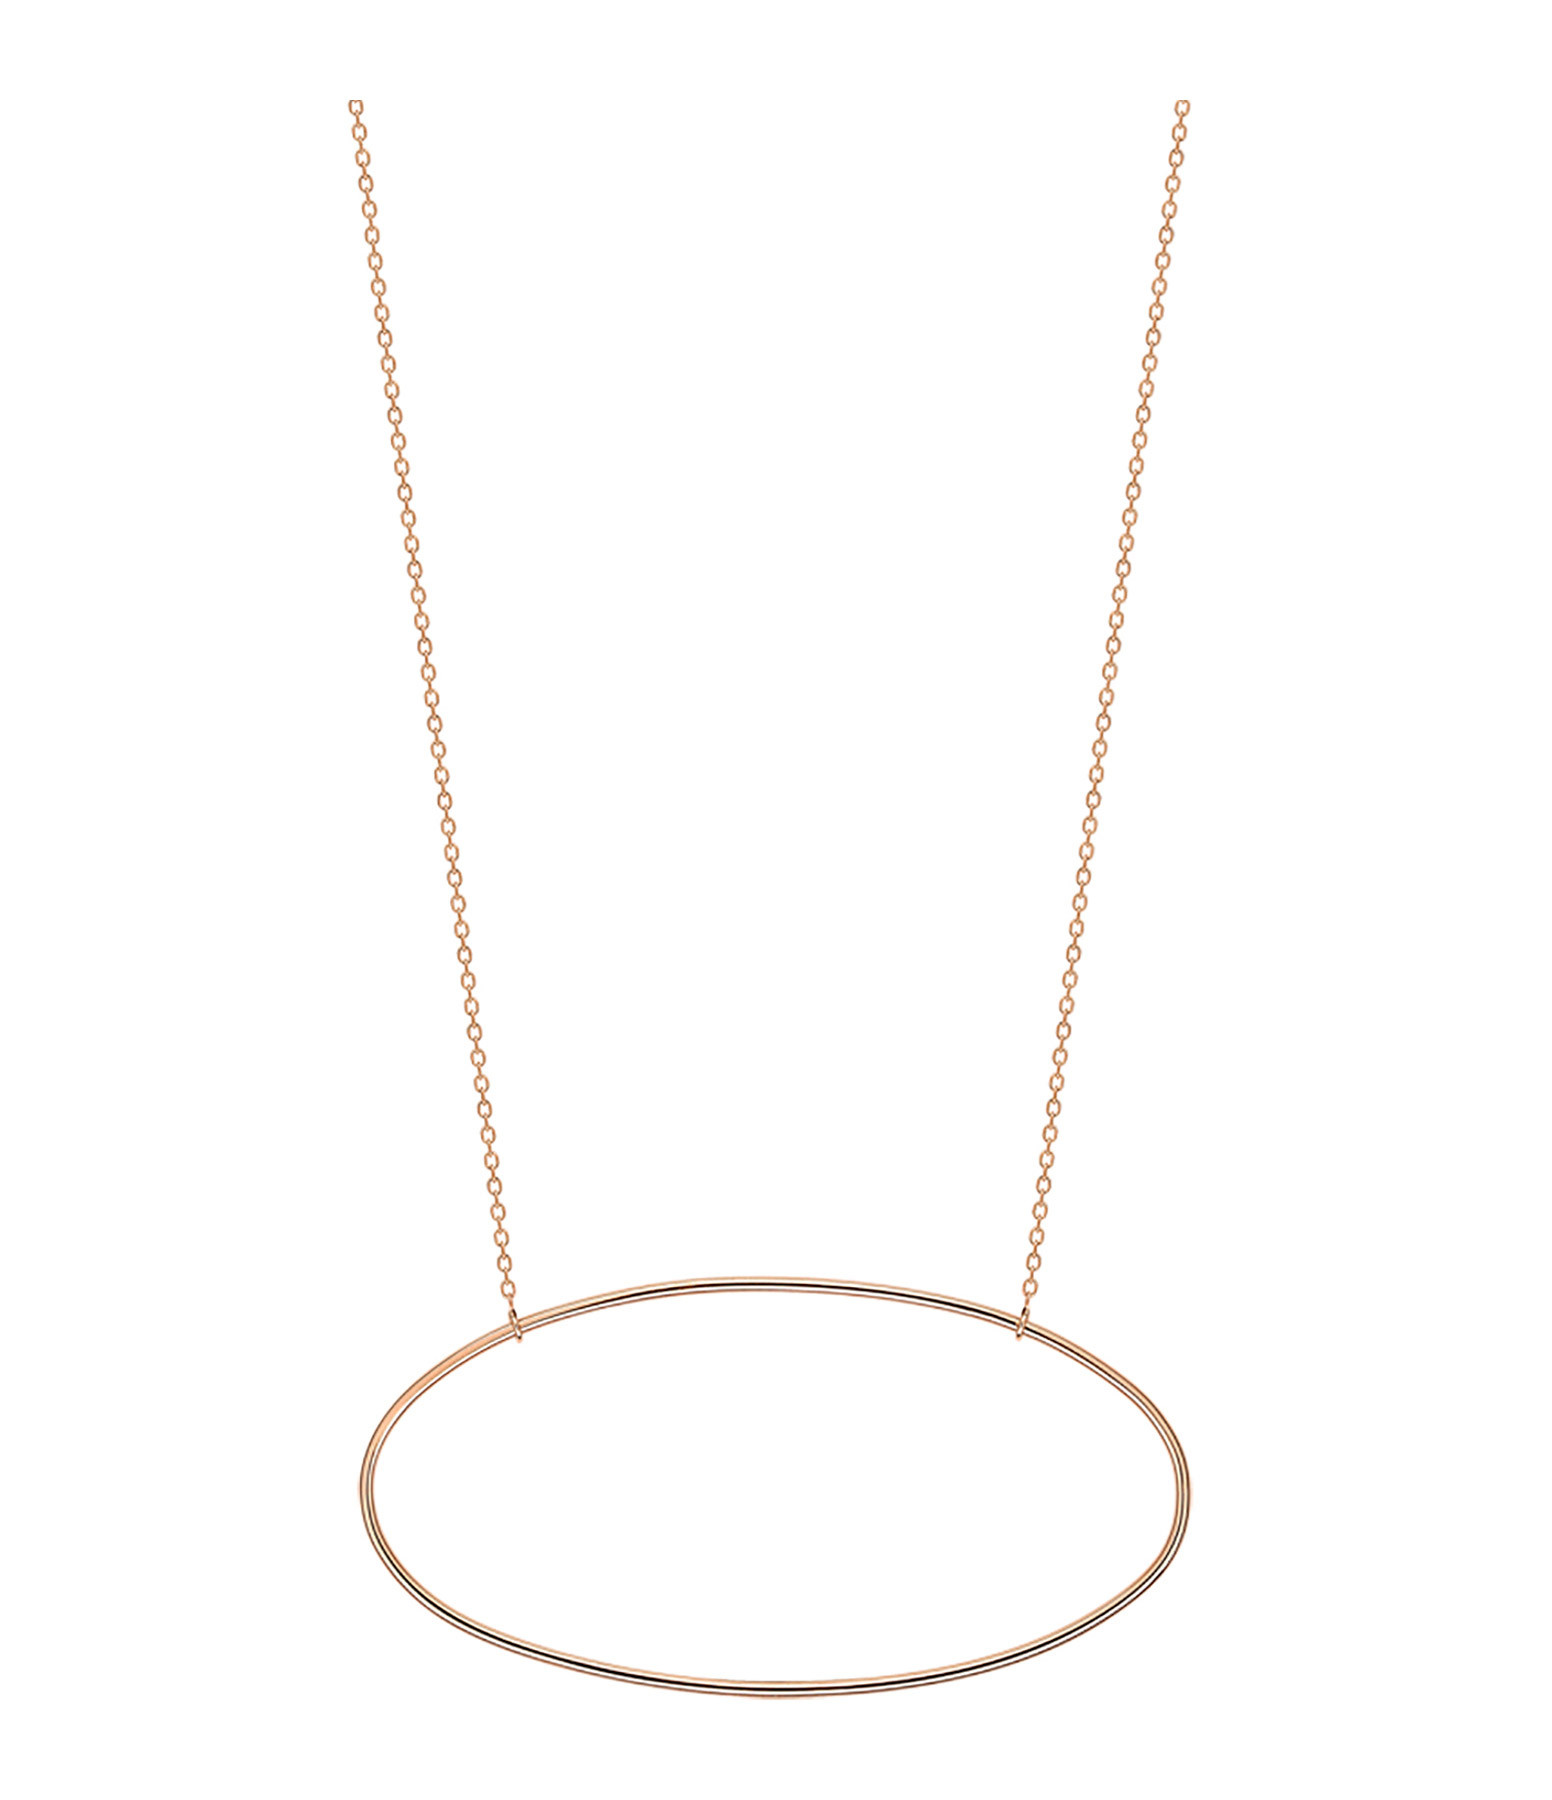 GINETTE_NY - Collier Ellipses Or Rose